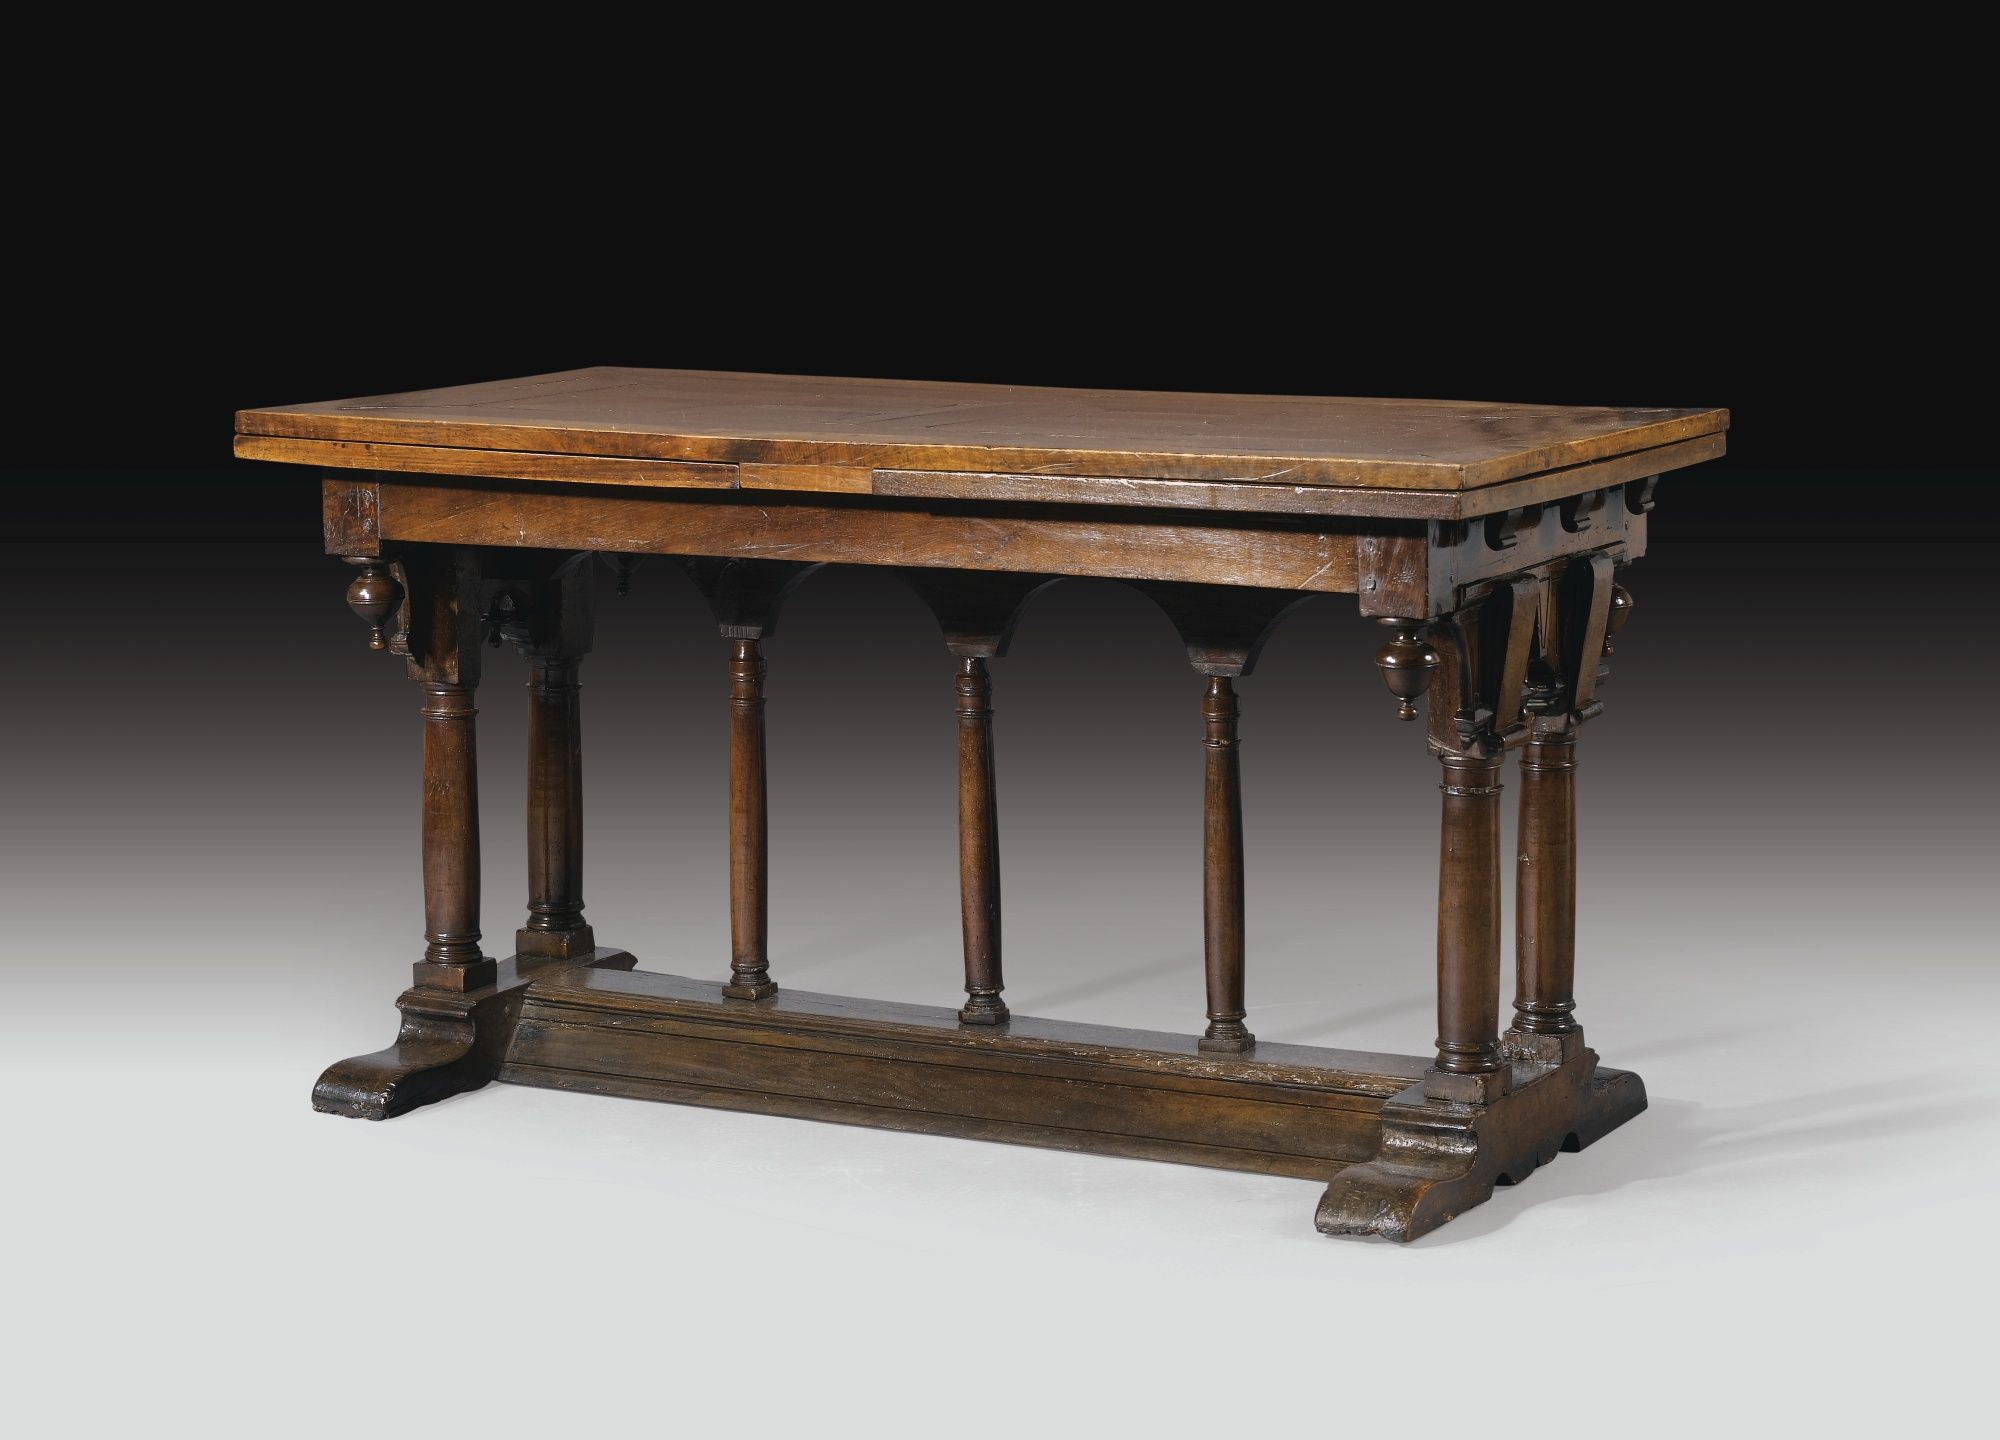 Table En Noyer D Poque Renaissance France Fin Du Xvie Si Cle  # Muebles Goticos